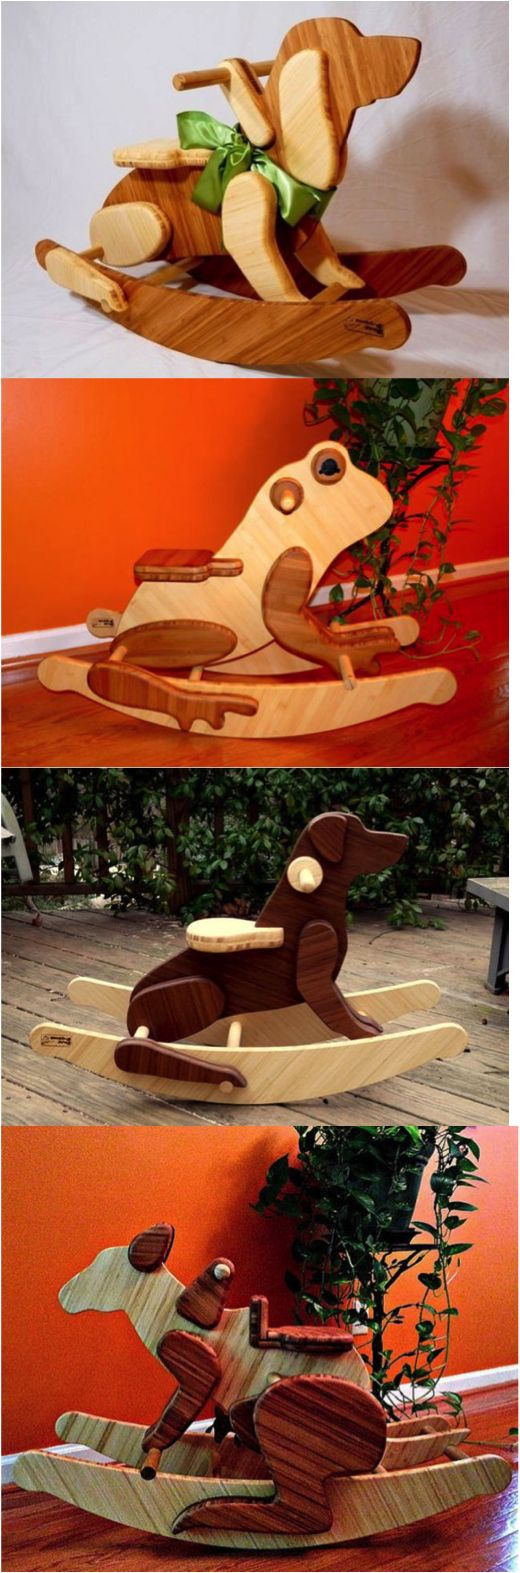 Custom rocking animal (I'll build anything but a horse -- horses have already been done :) ) made out of bamboo. Would love to make a perfect custom one for your ideal nursery or children's room.   Hatch.co